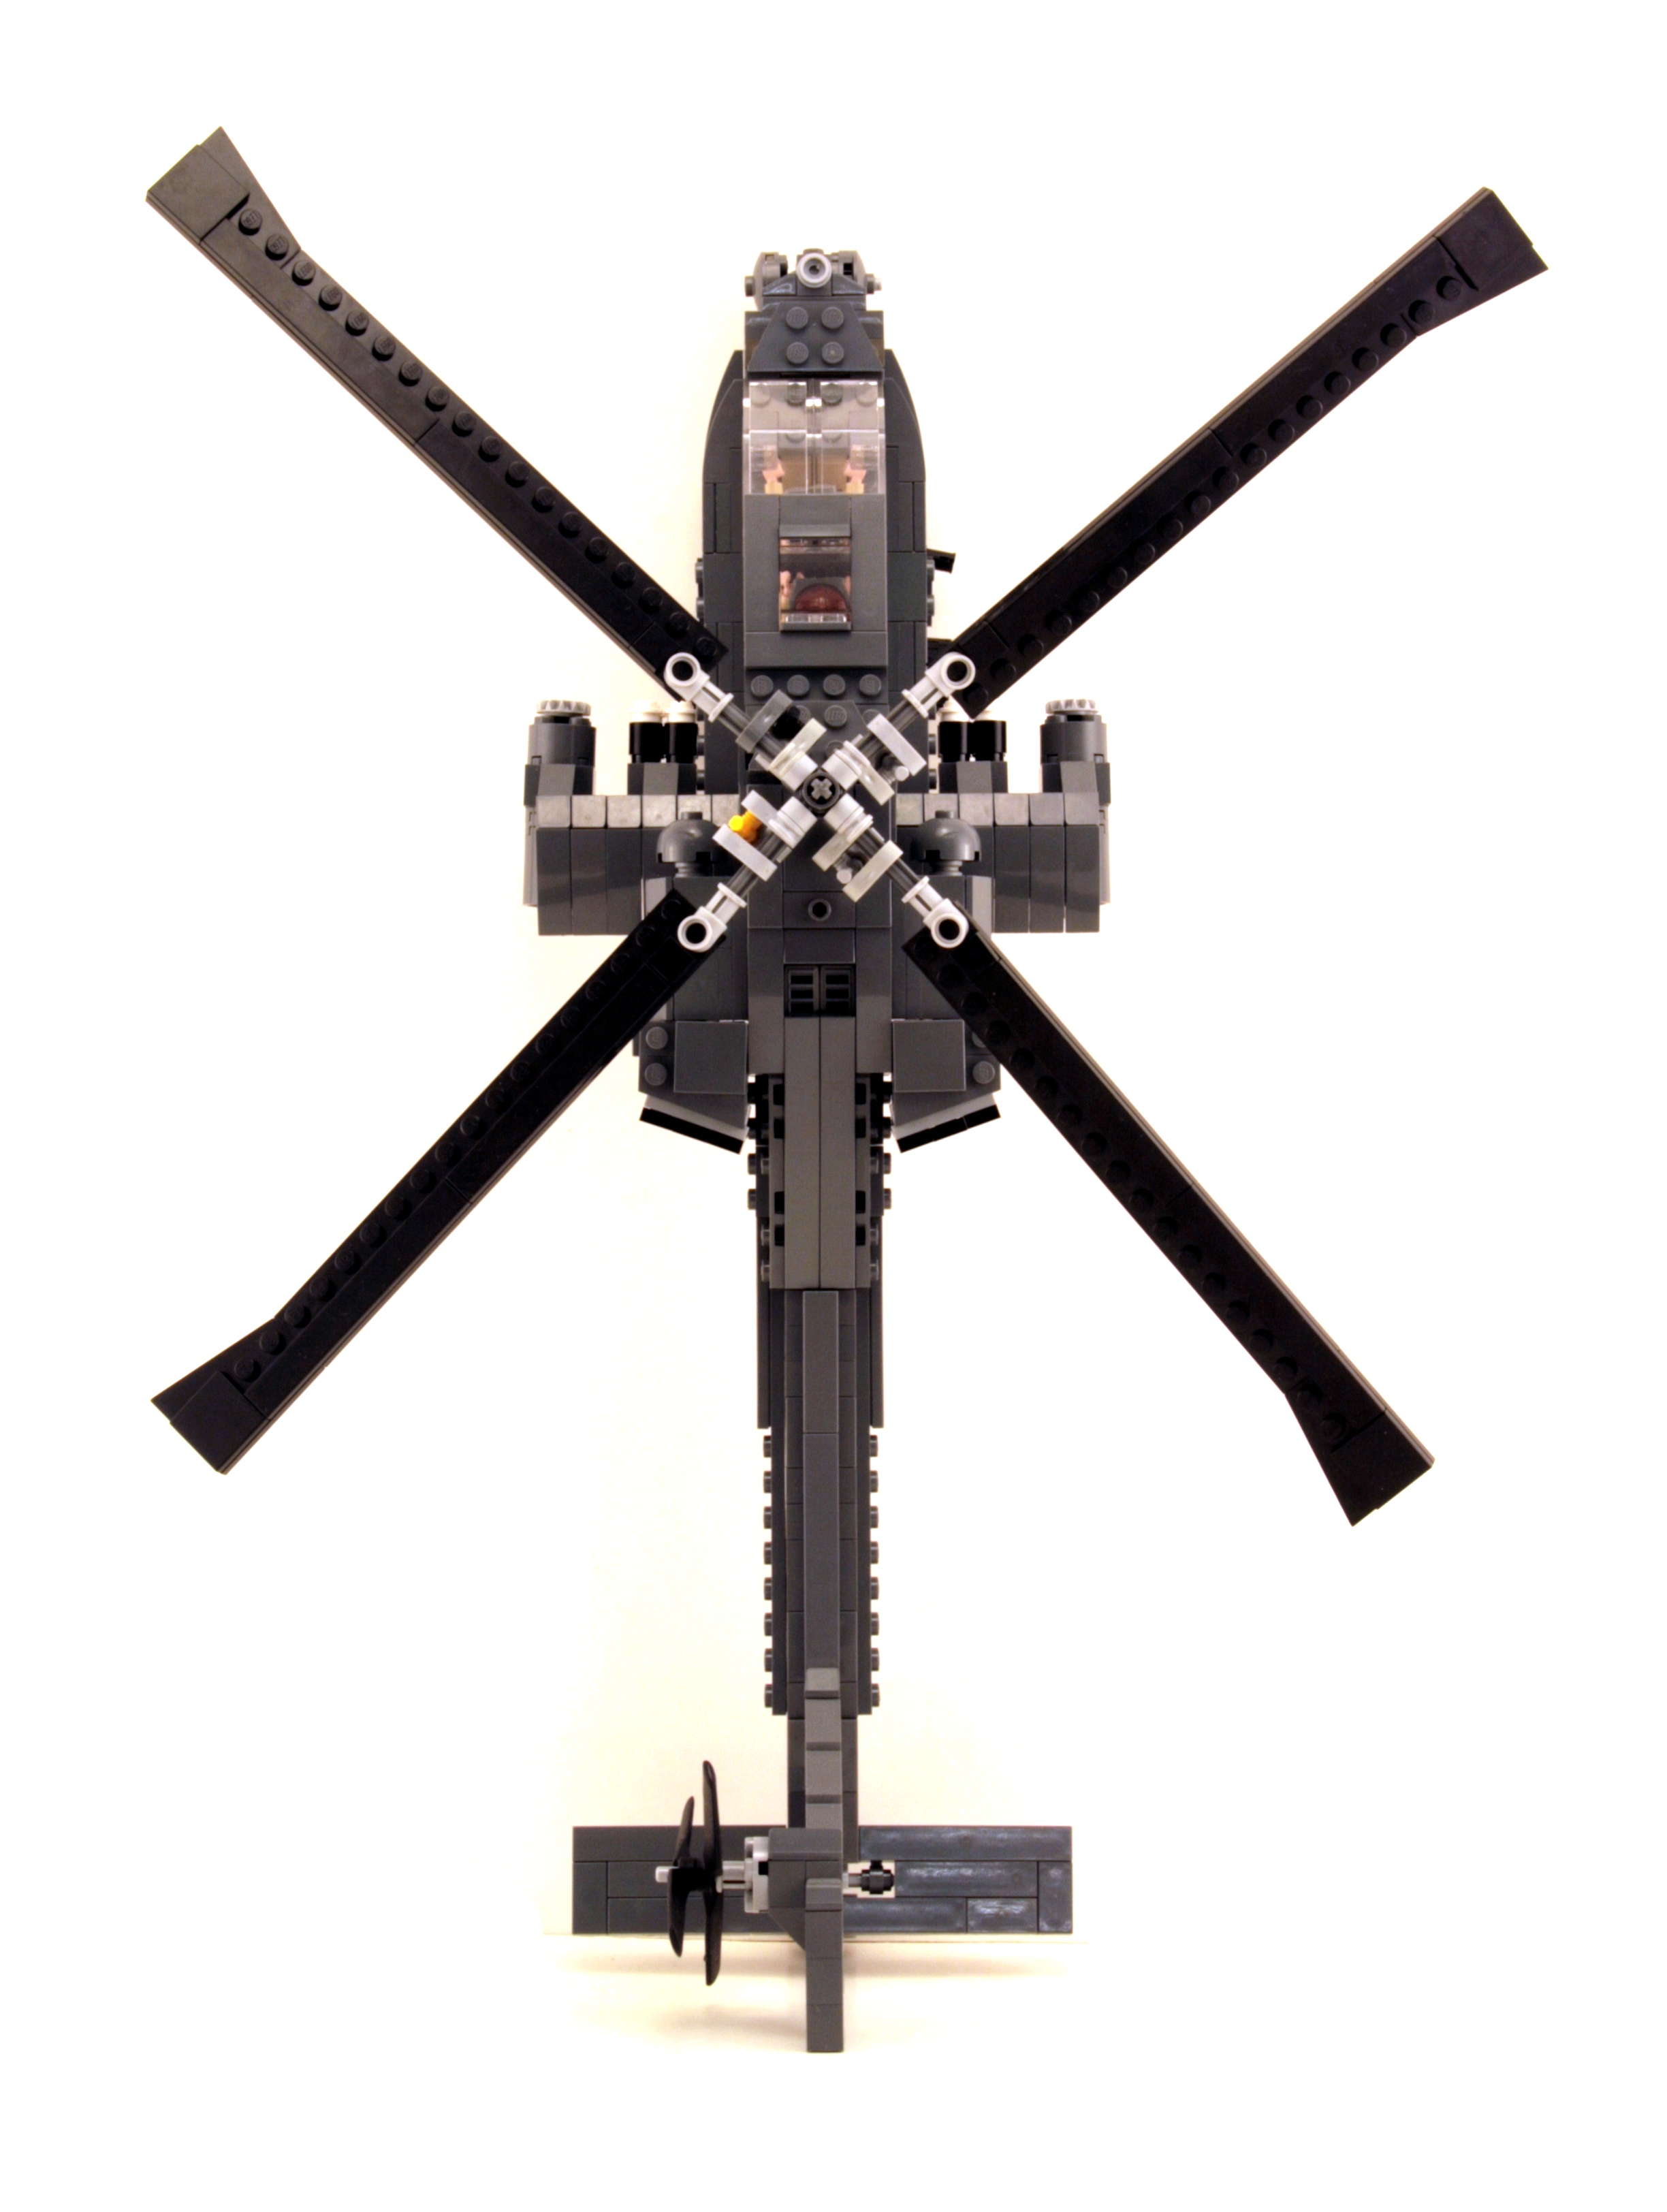 64 Best Ideas About Tarot The World On Pinterest: File:LEGO AH-64 Apache